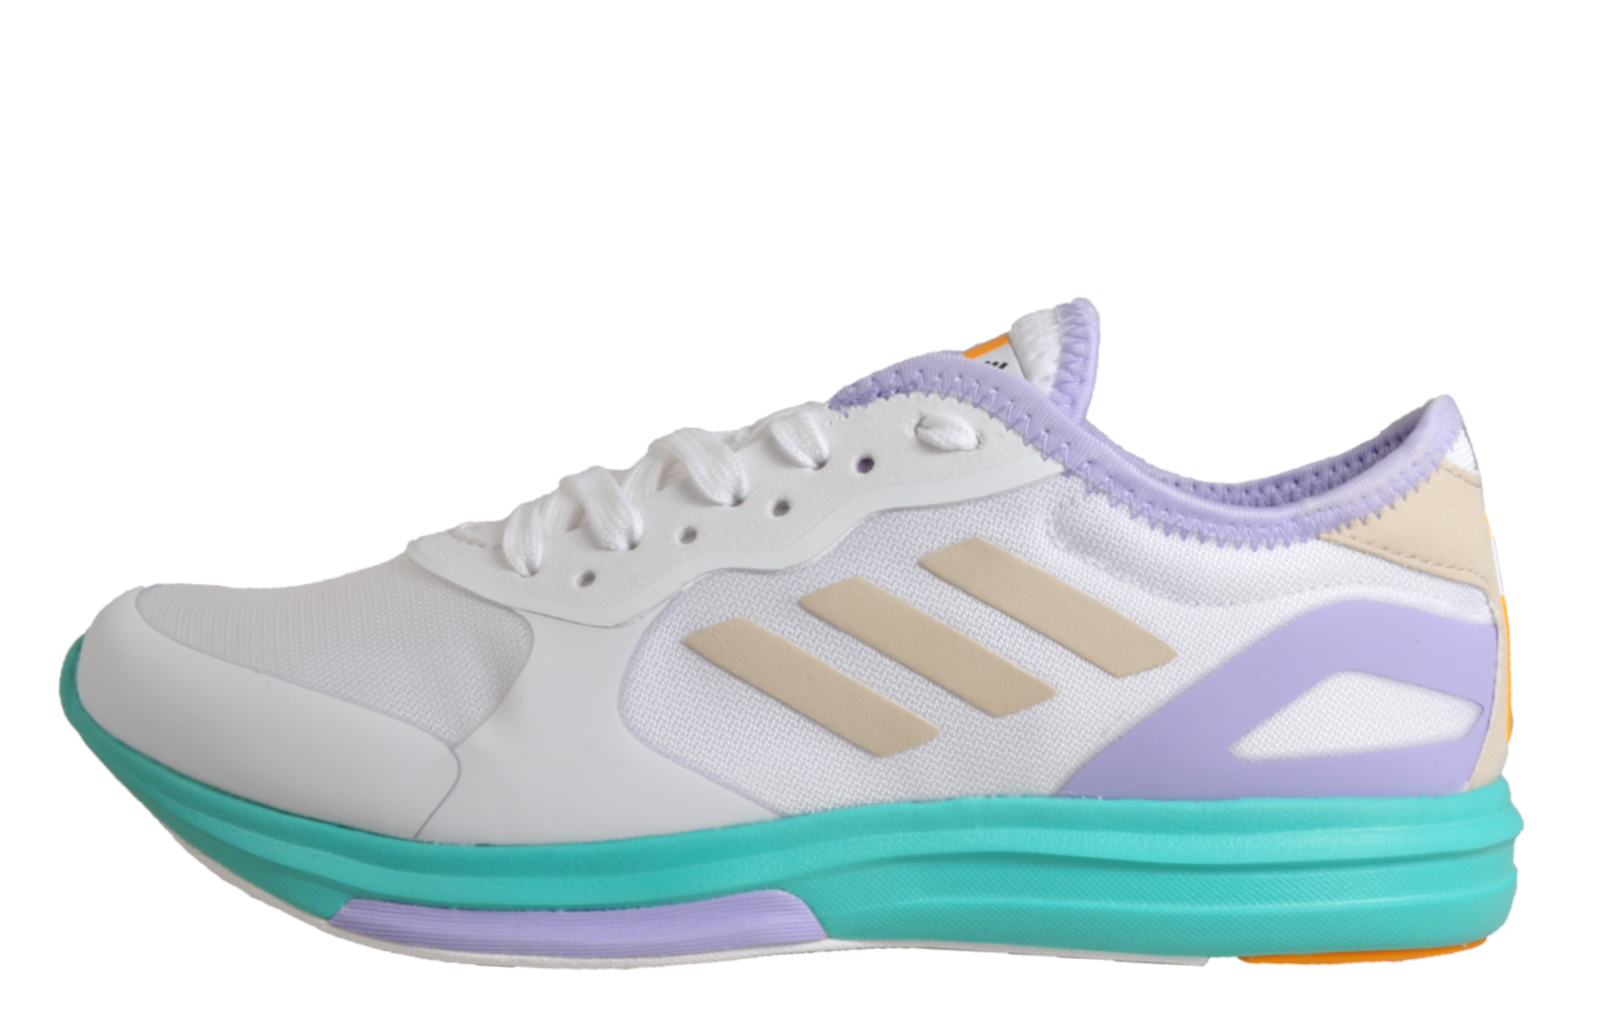 660987d25 Adidas Stella McCartney Yvori Runner Womens - AD169433. alternate view 1.  alternate view 2